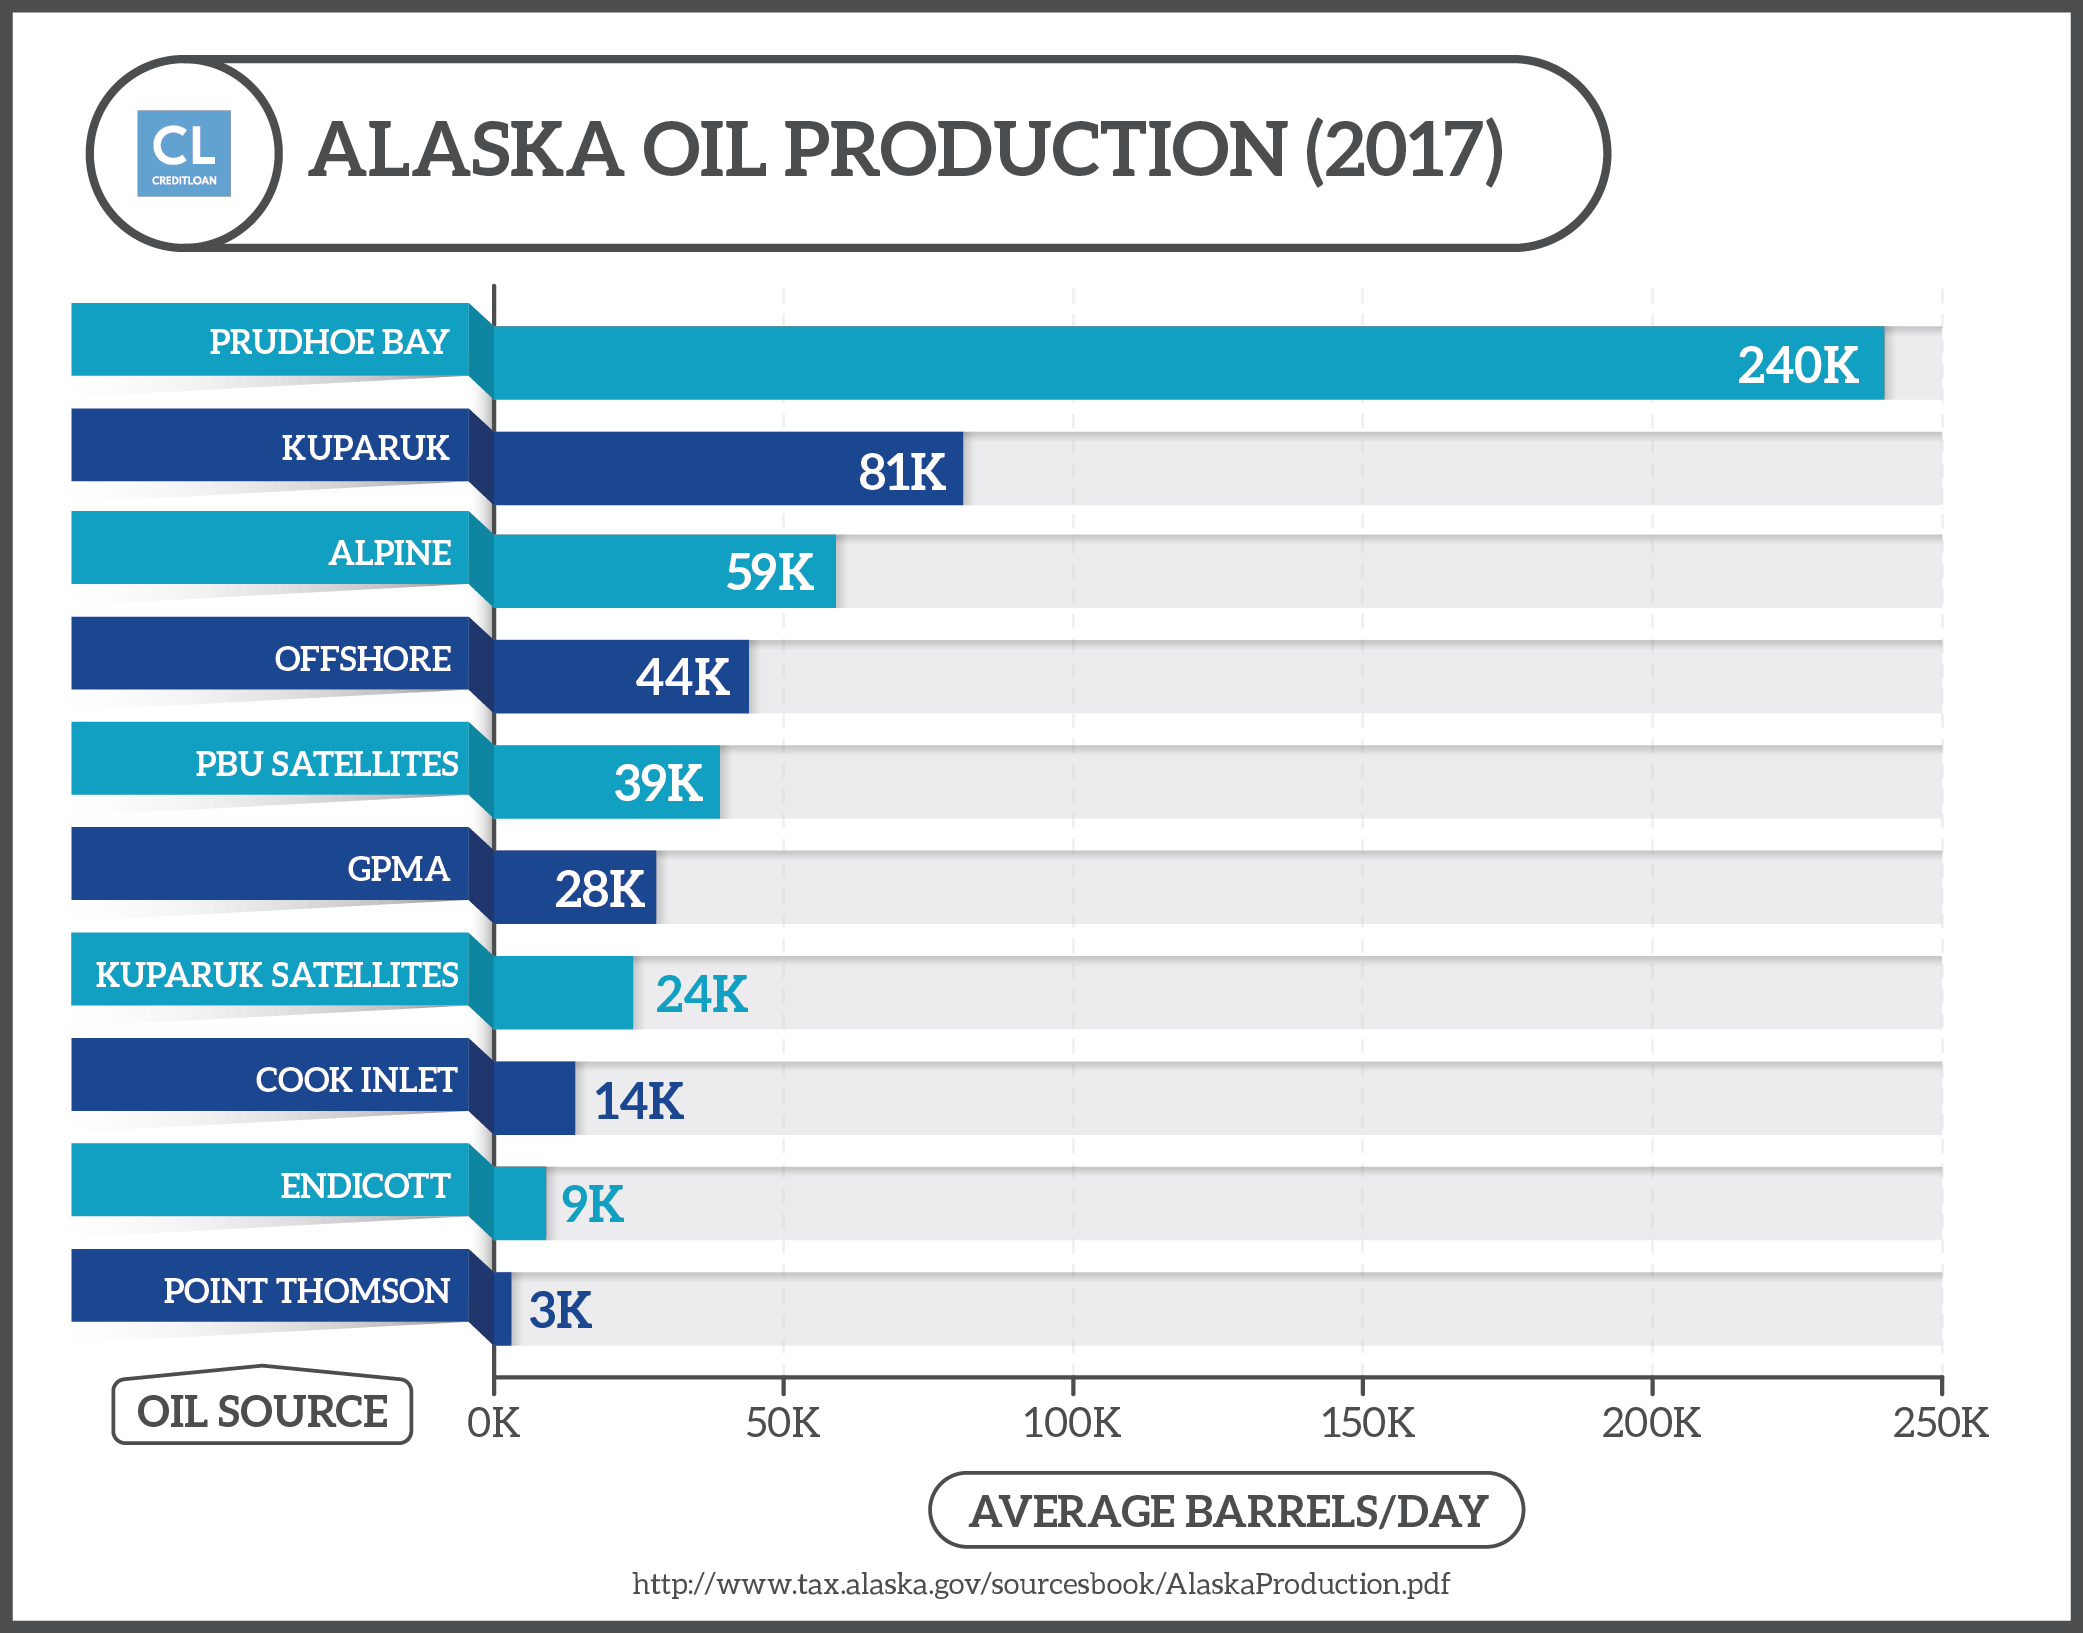 Alaska Oil Production Sources 2017